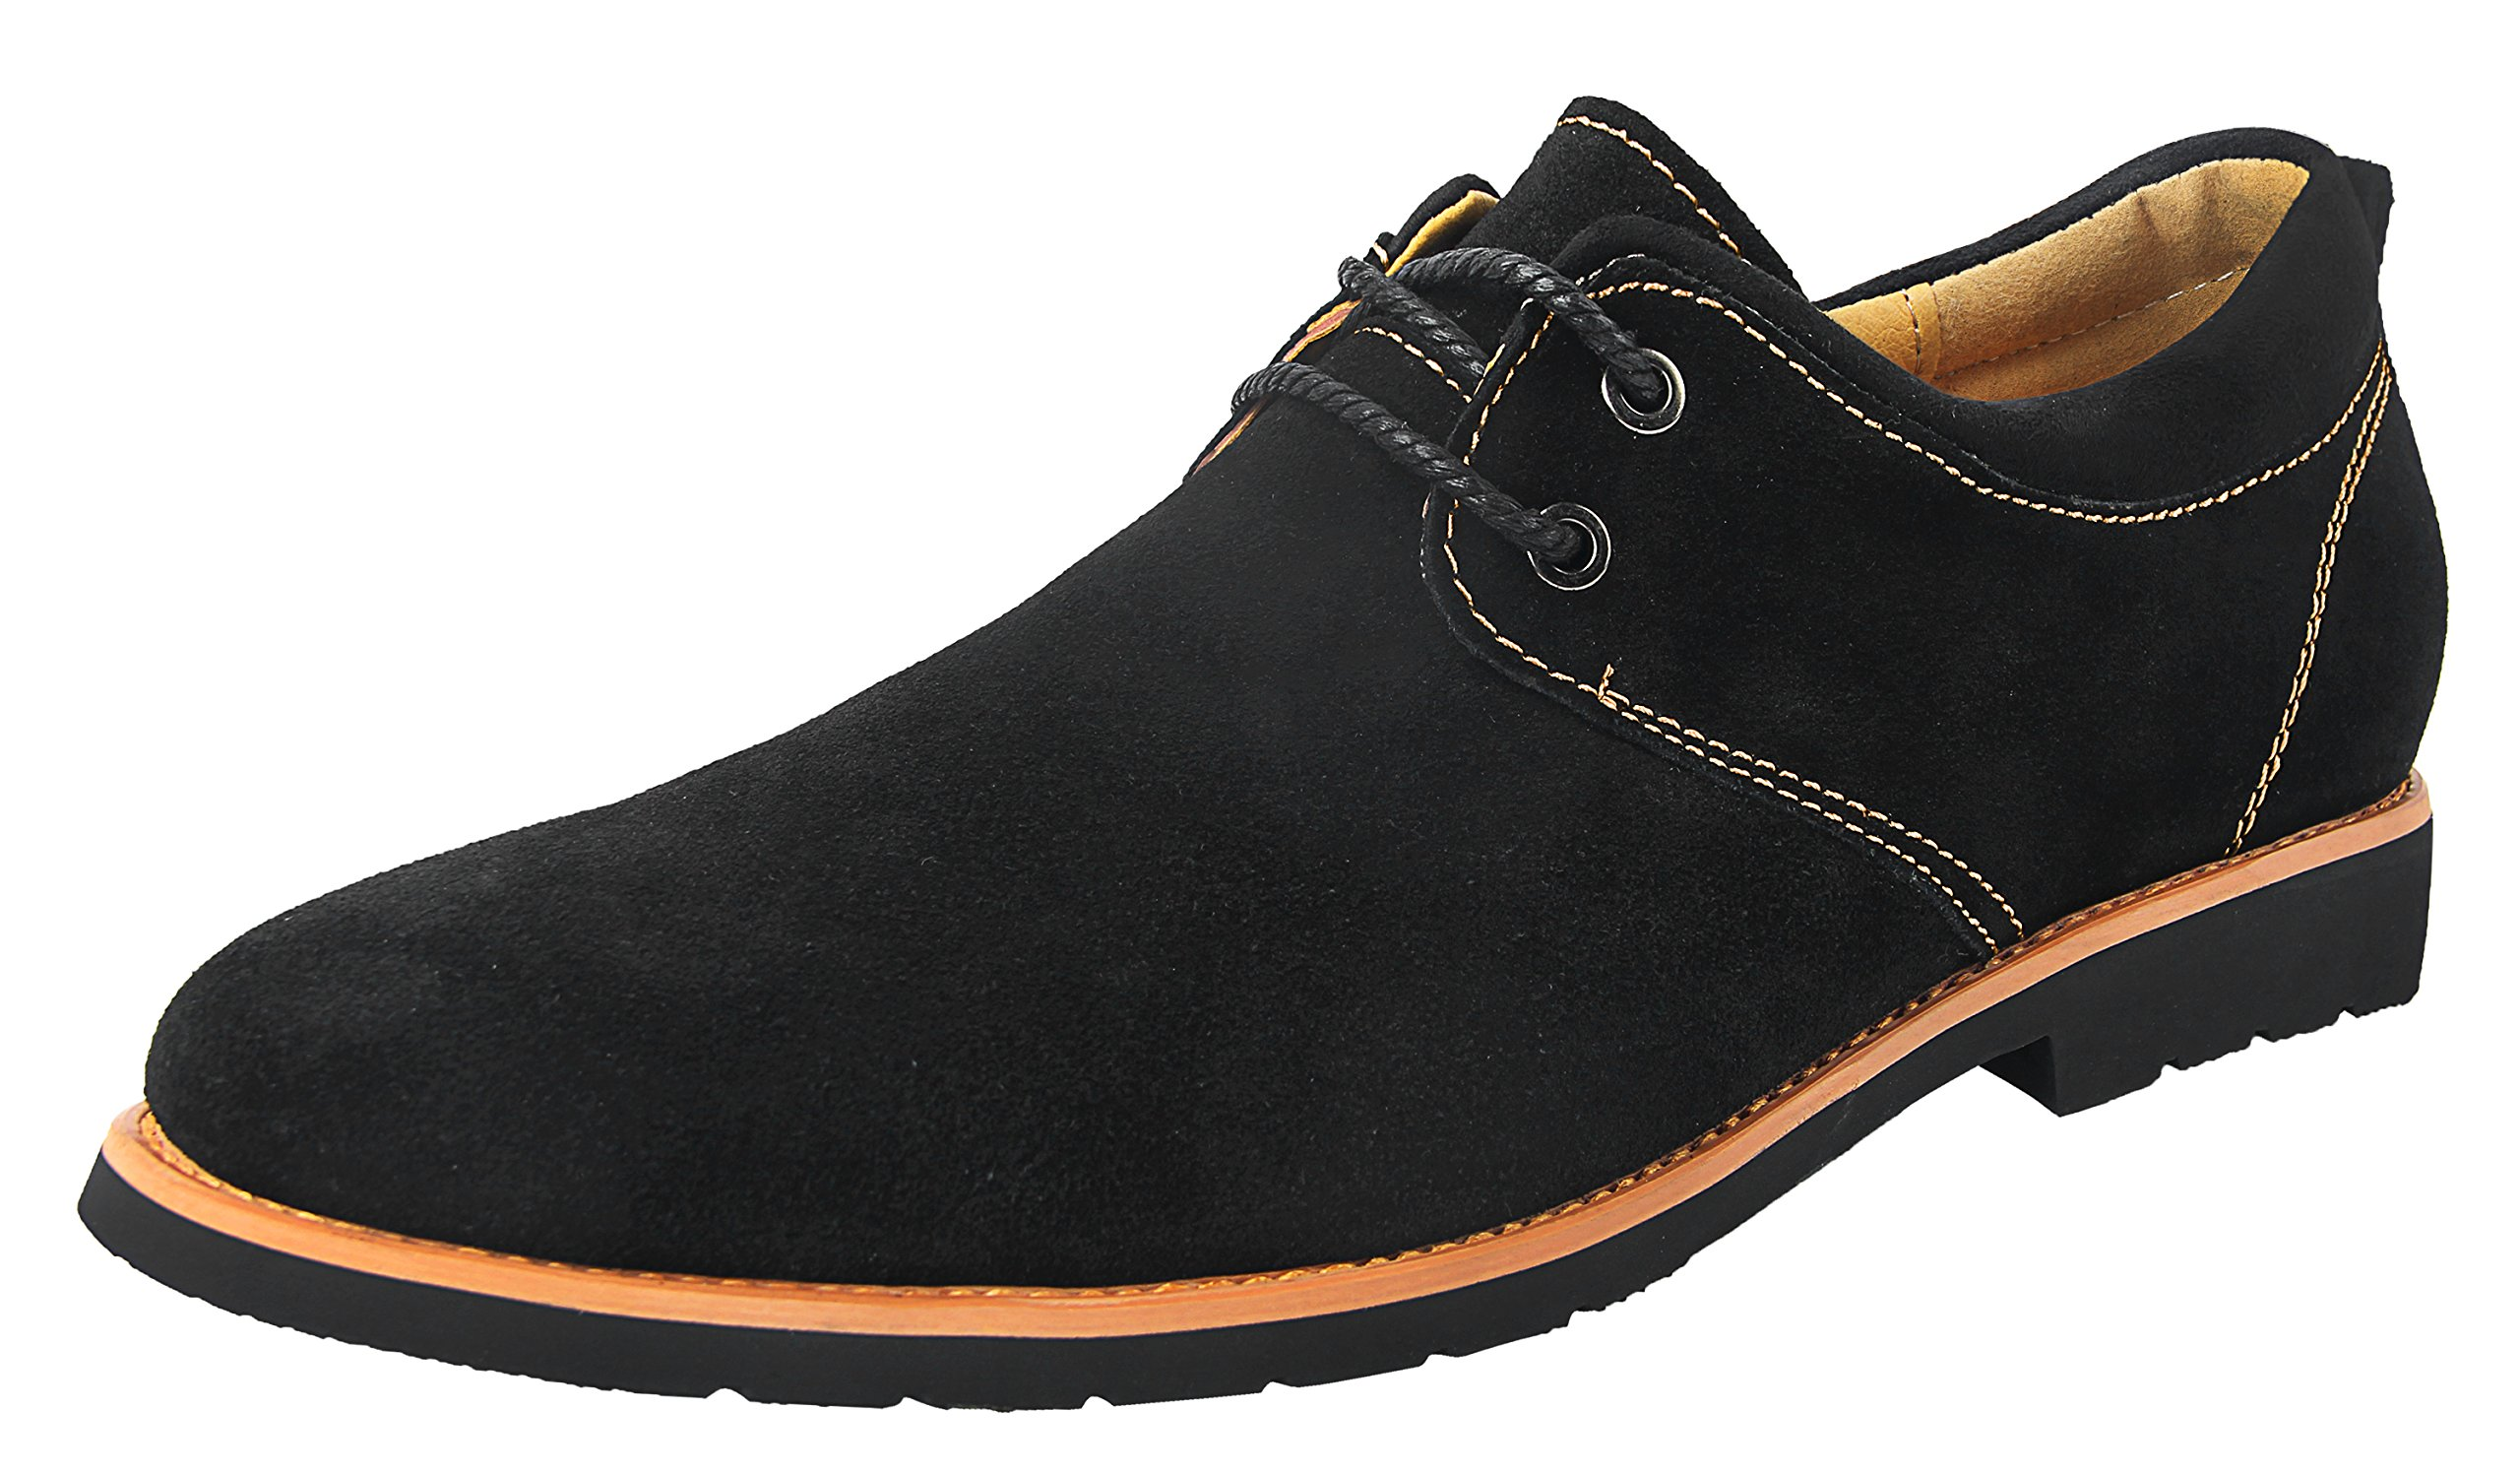 iLoveSIA Men's Classic Dress Oxford Suede Leather Formal Shoe Black/Golden Lining US Size 10